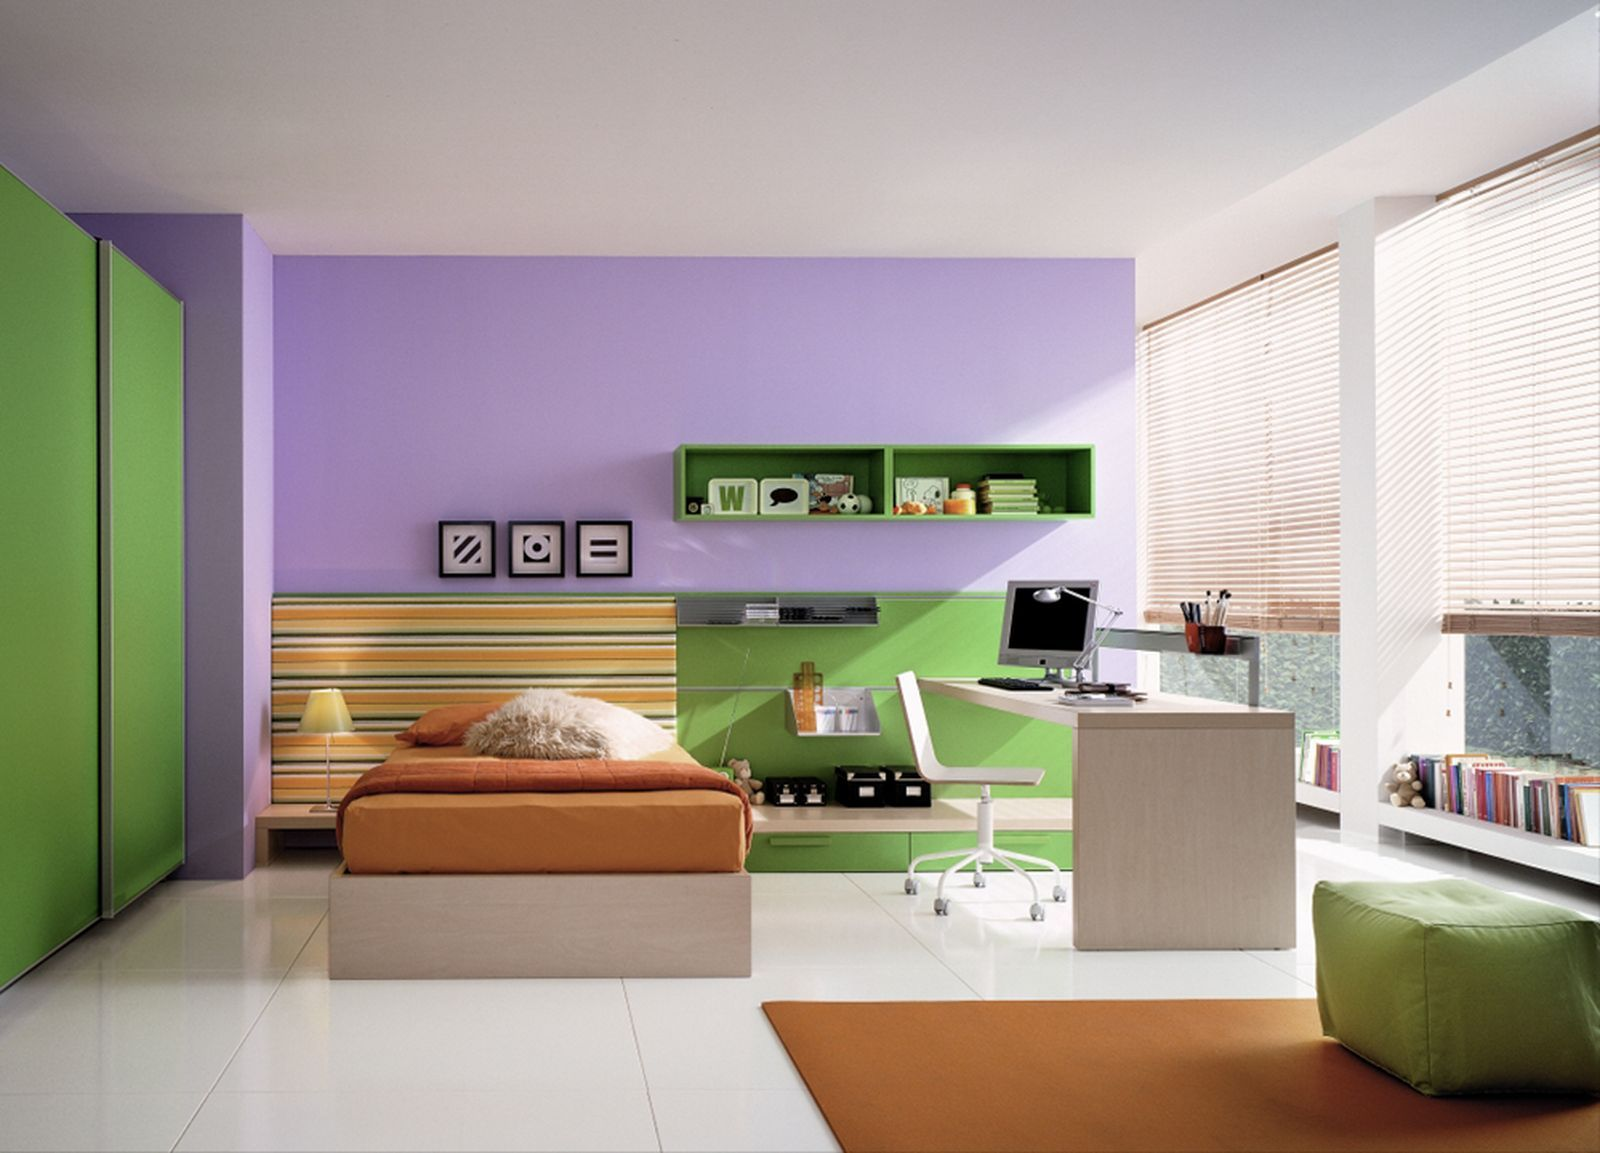 20 Contemporary Kids Room Interior Design ideas | Jantelle\'s Home ...